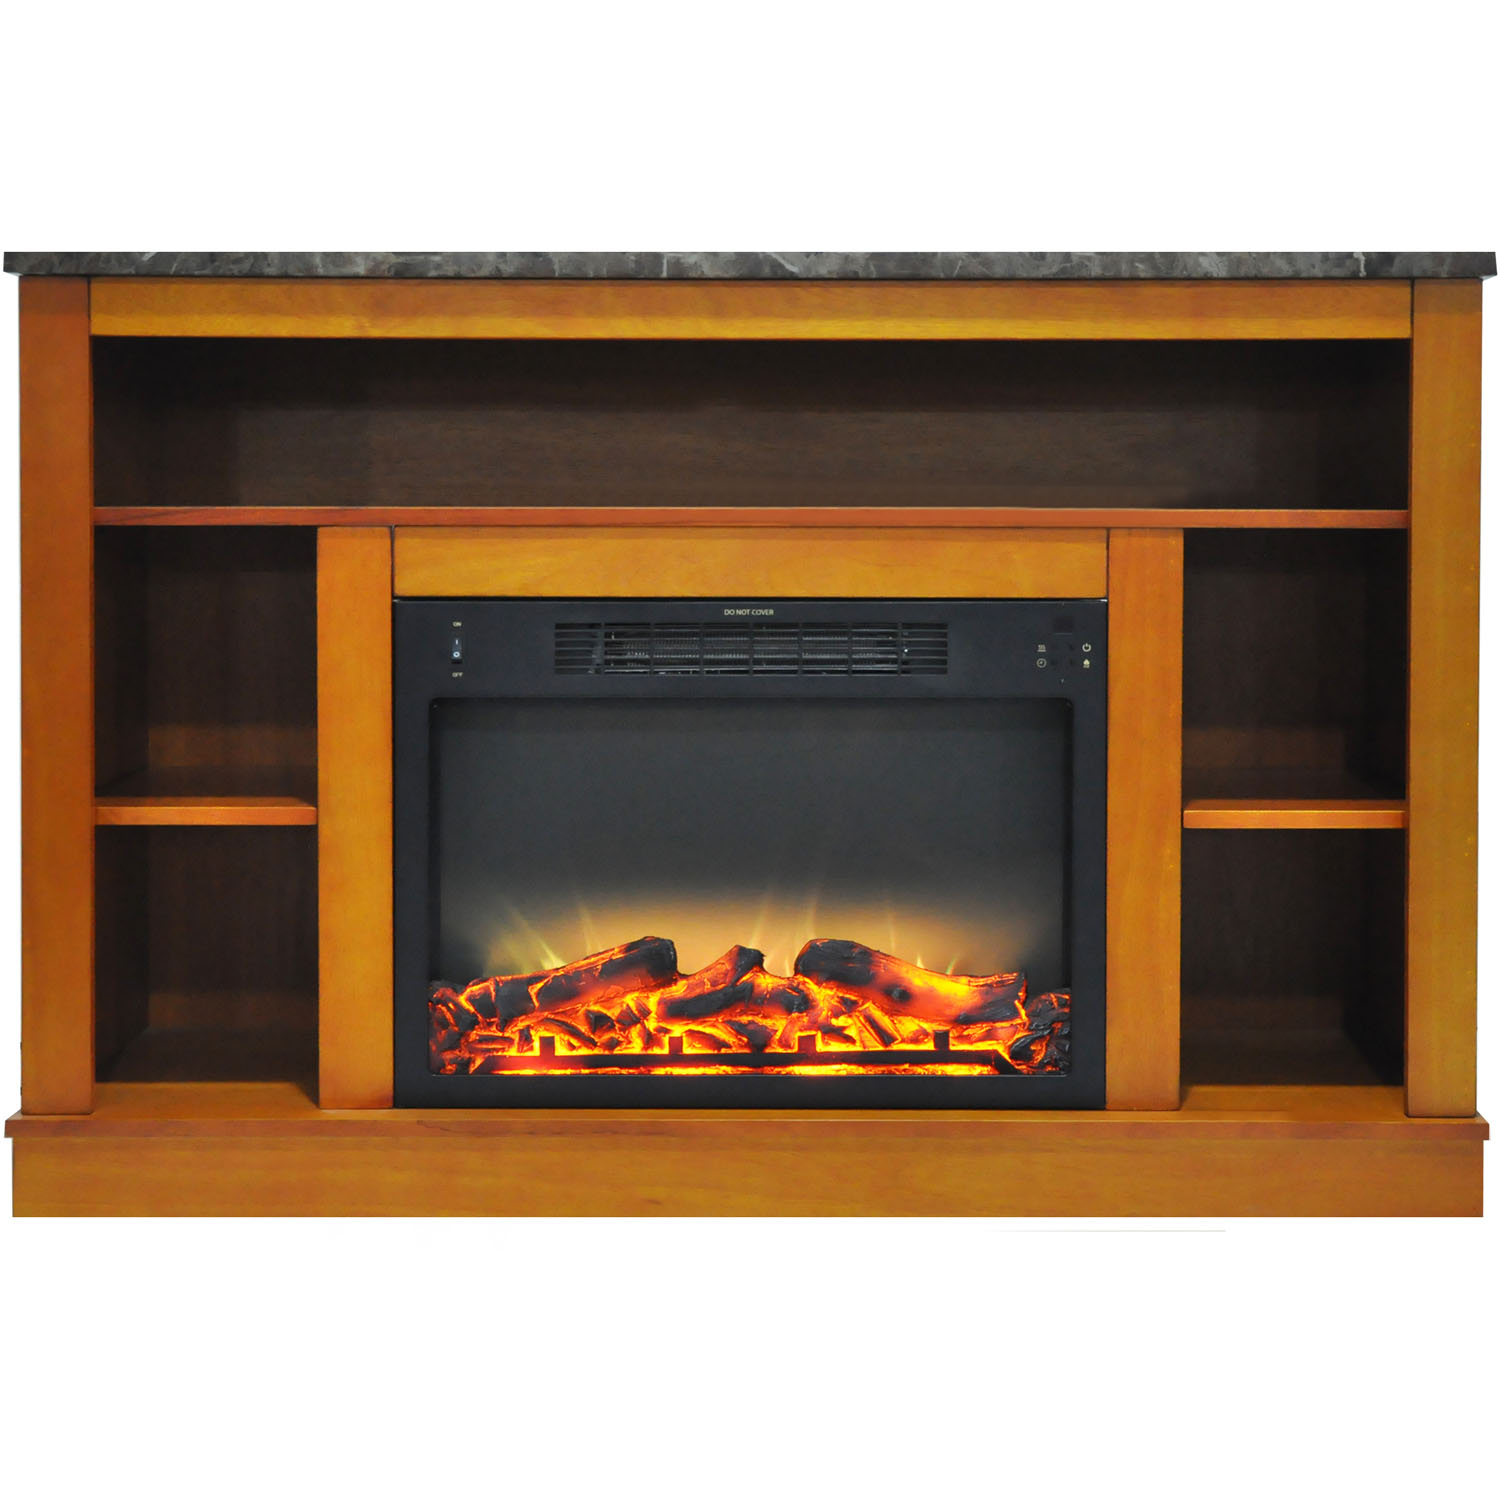 Electric Fireplaces For Sale At Walmart Cambridge Seville 47